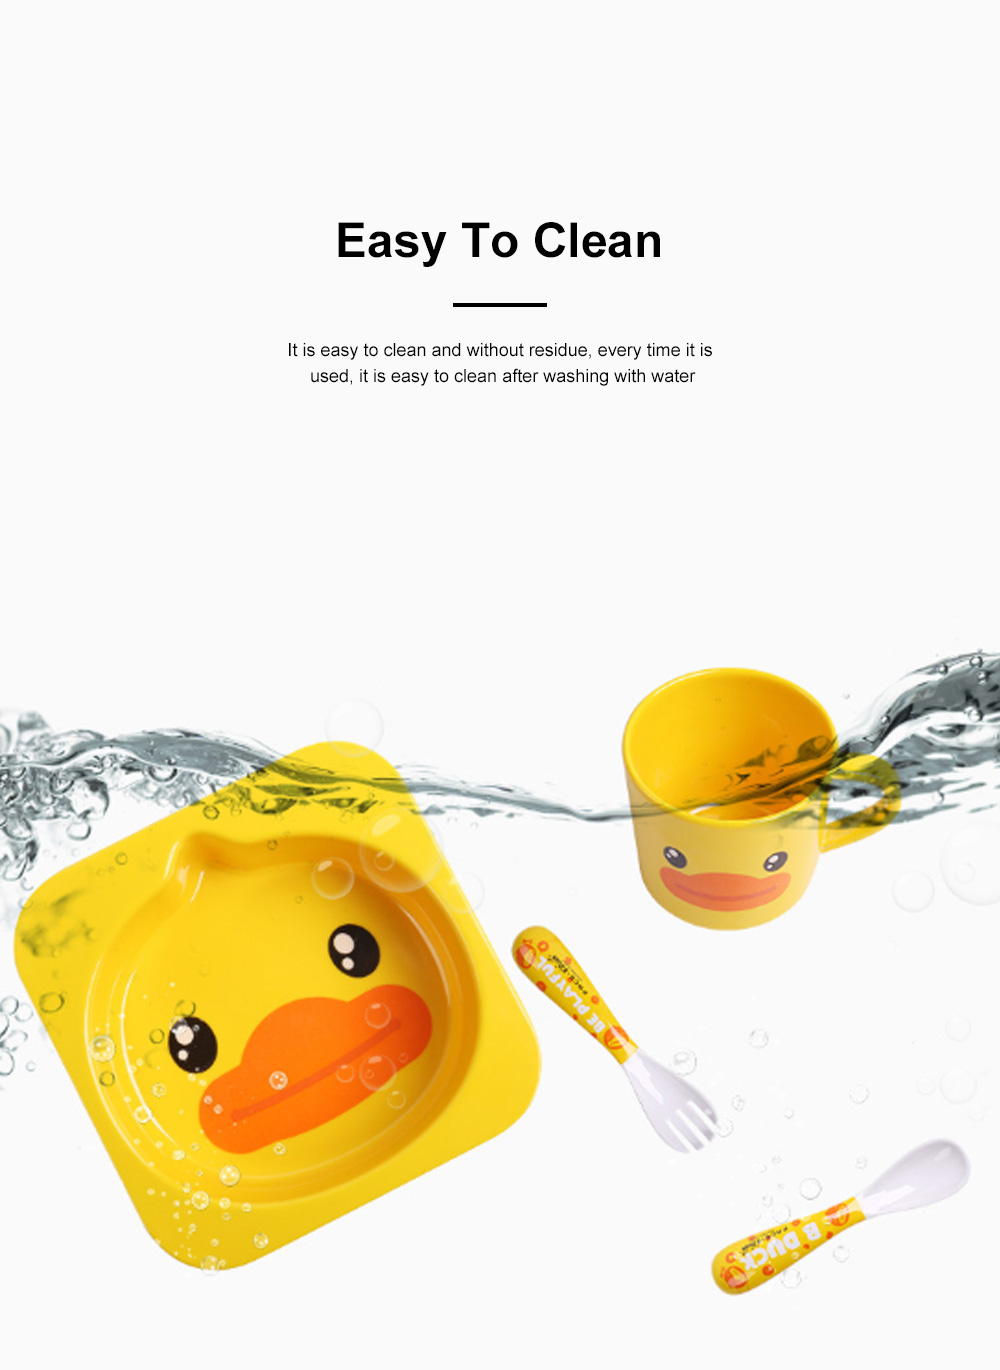 Small Yellow Duck Children's Tableware Baby Multi-function Cute Cartoon Plate Baby Shatter-resistant Food Supplement Bowl Fork Spoon Set 4